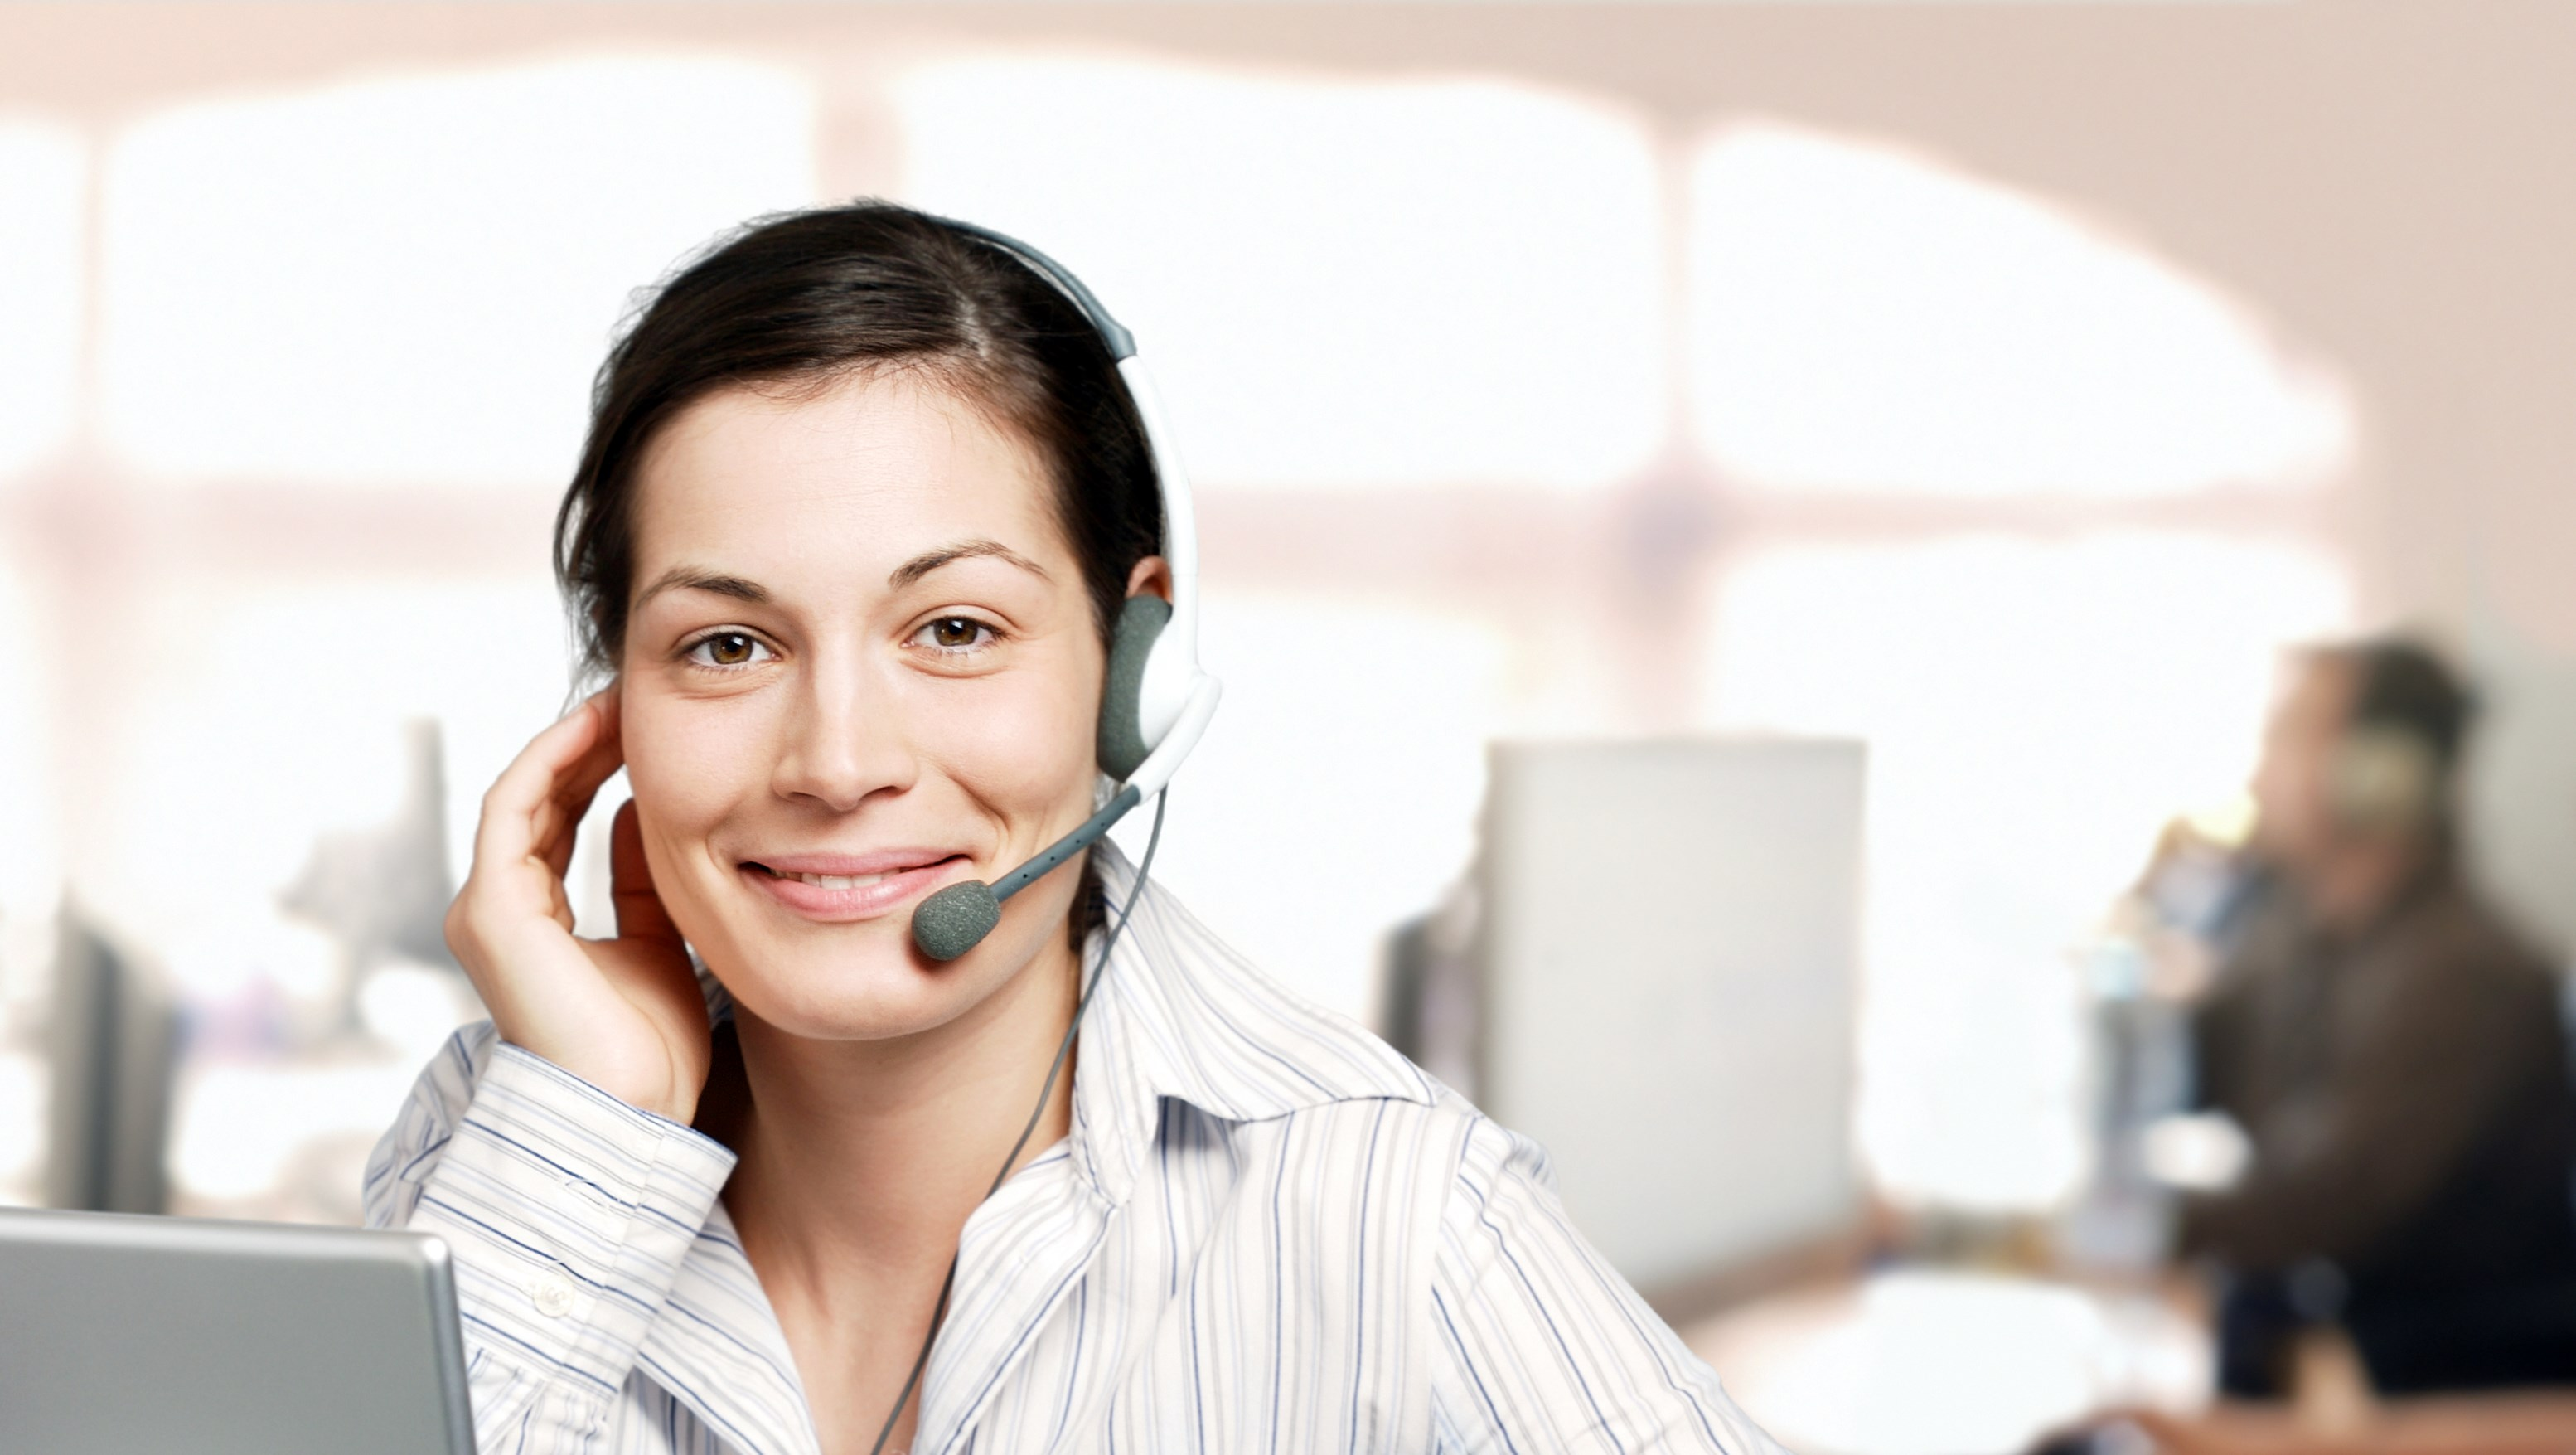 contact center agent answering the phone according to call center management best practices